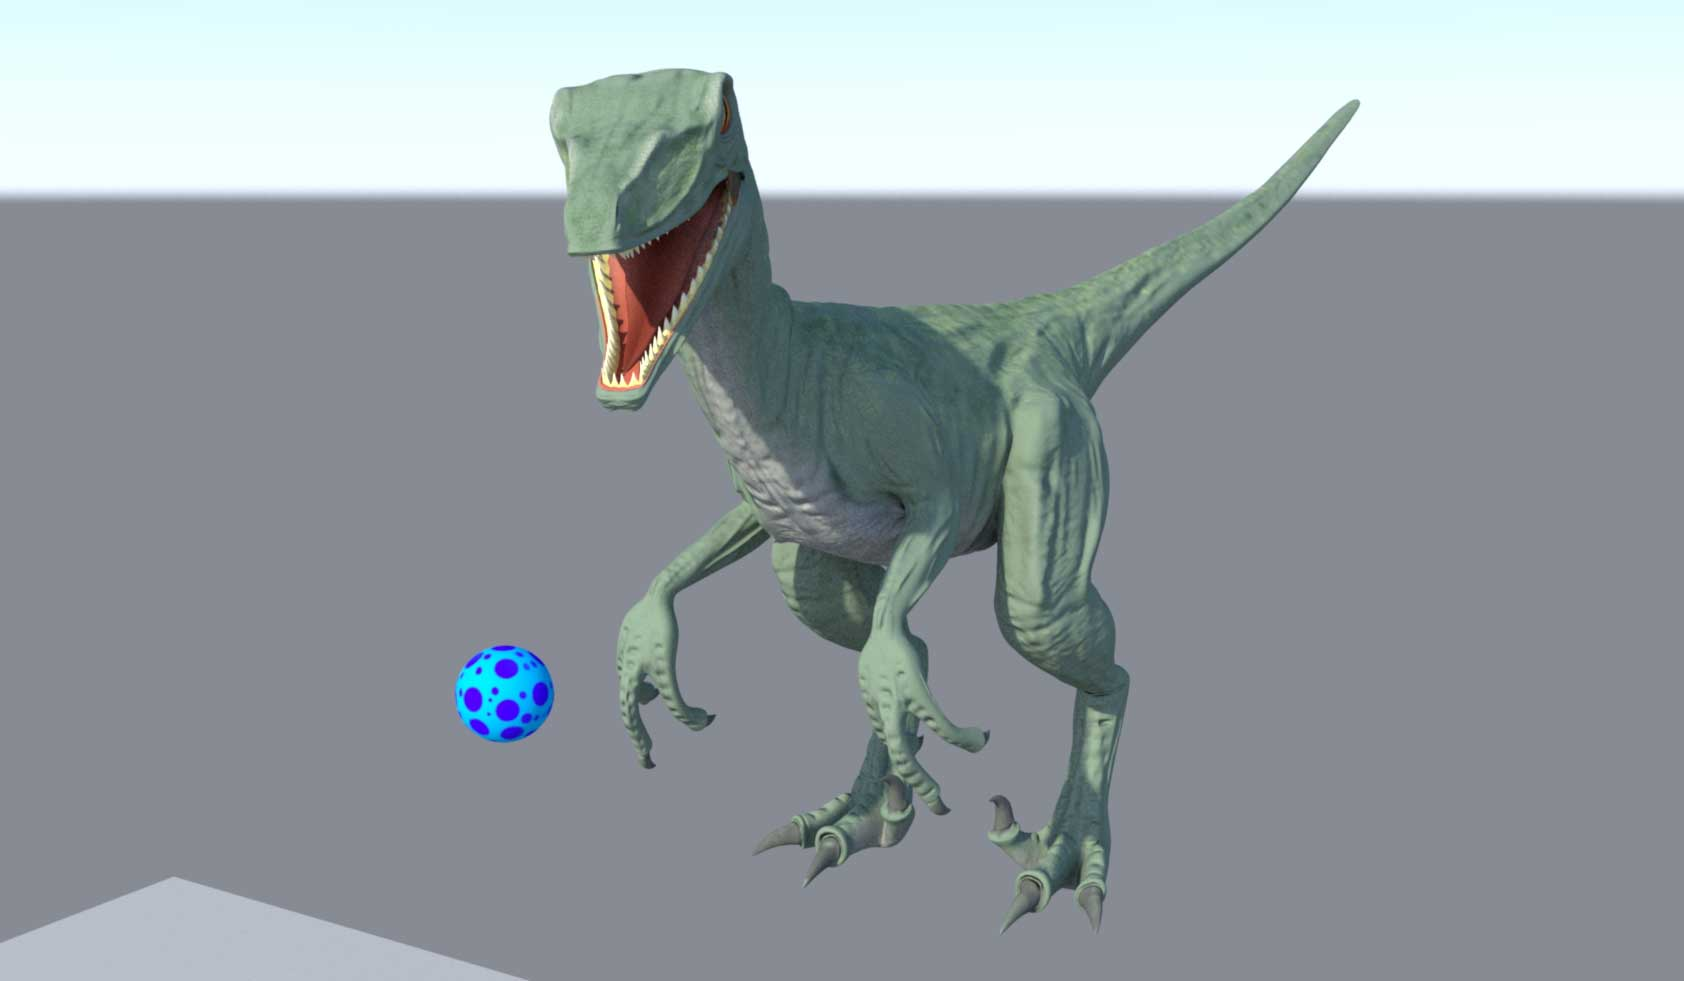 An image of a computer generated raptor